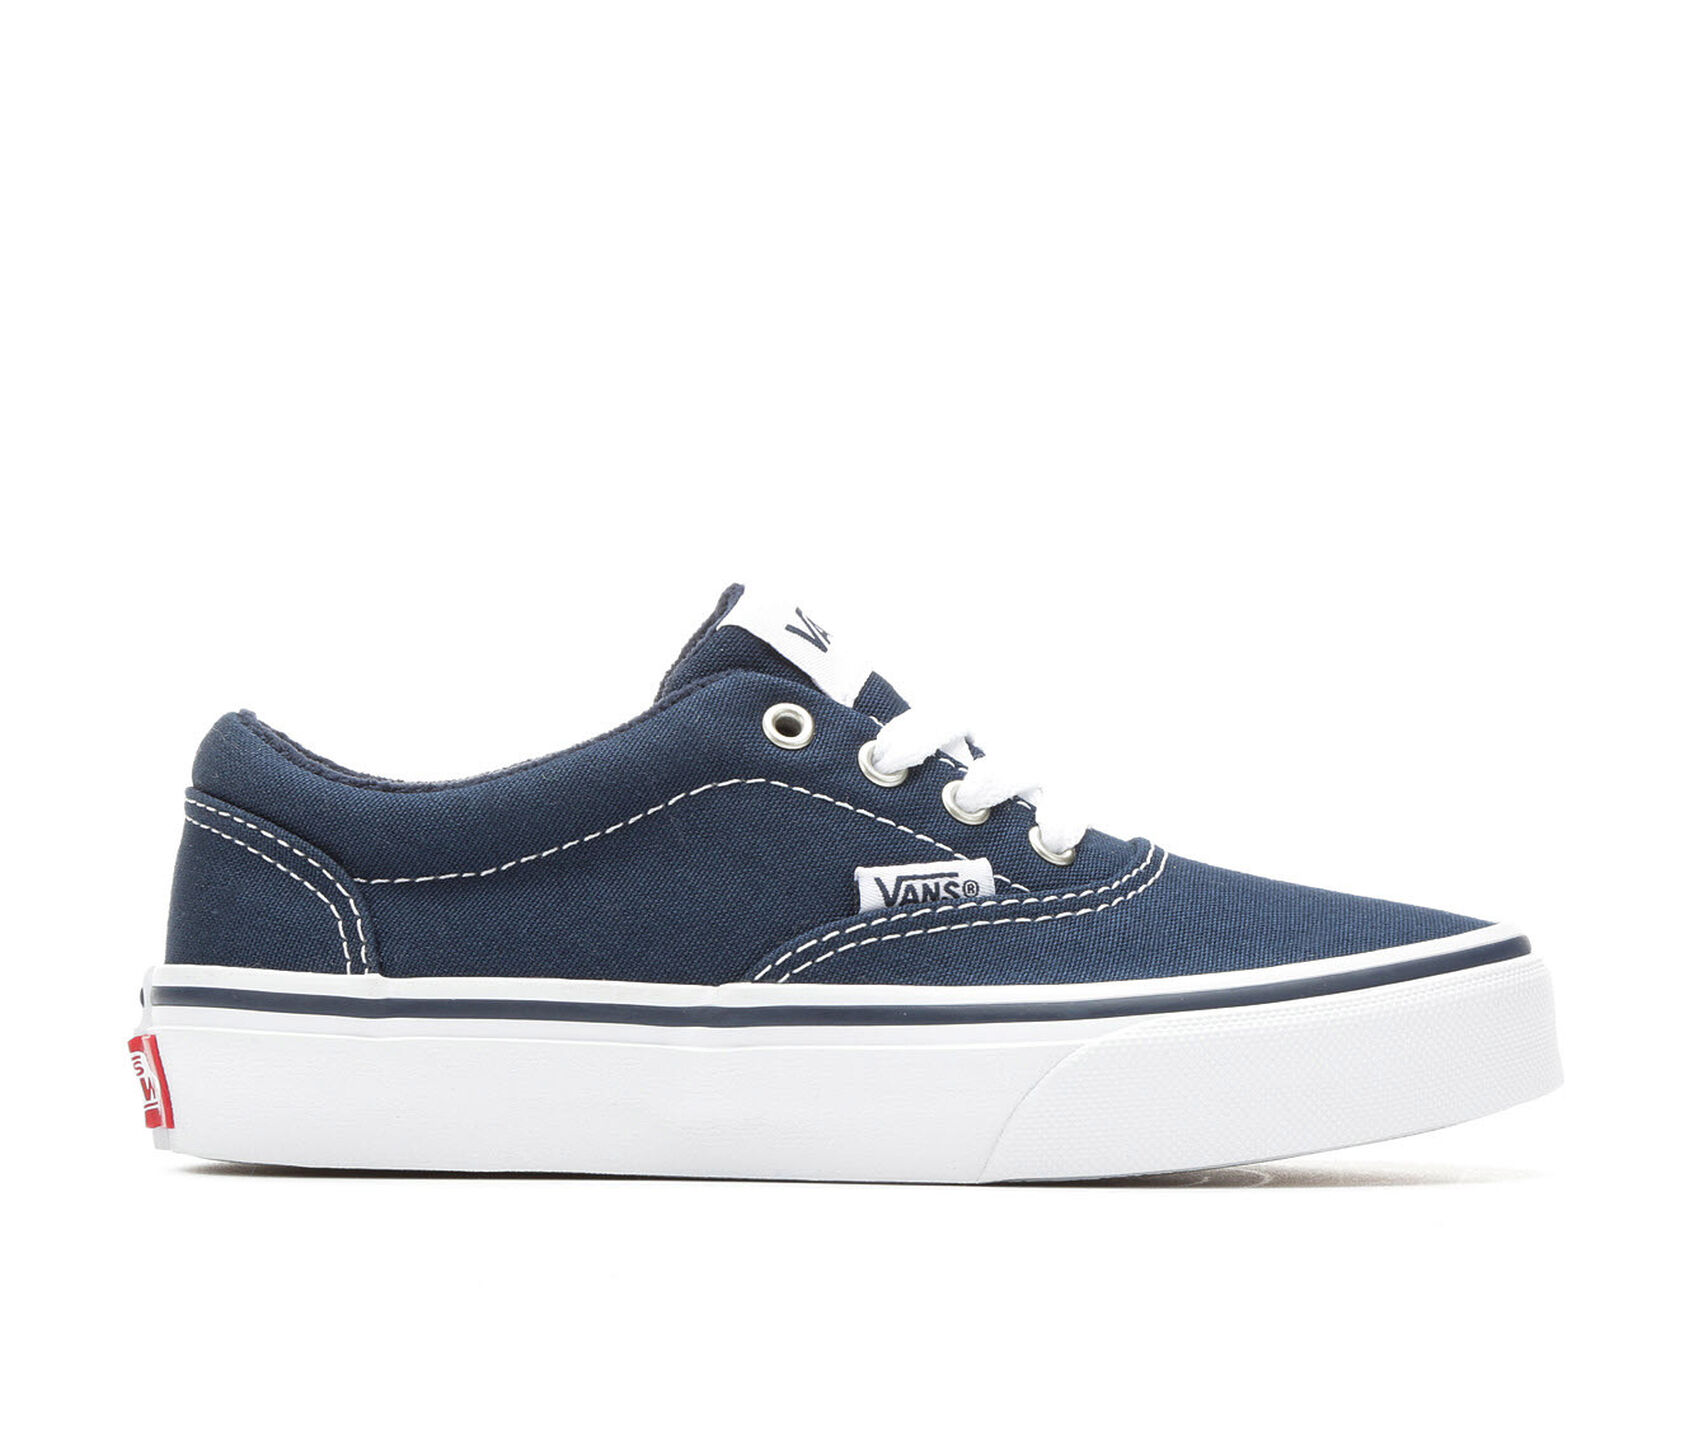 7b2ece15103395 Kids  39  Vans Little Kid Doheny Skate Shoes. Previous